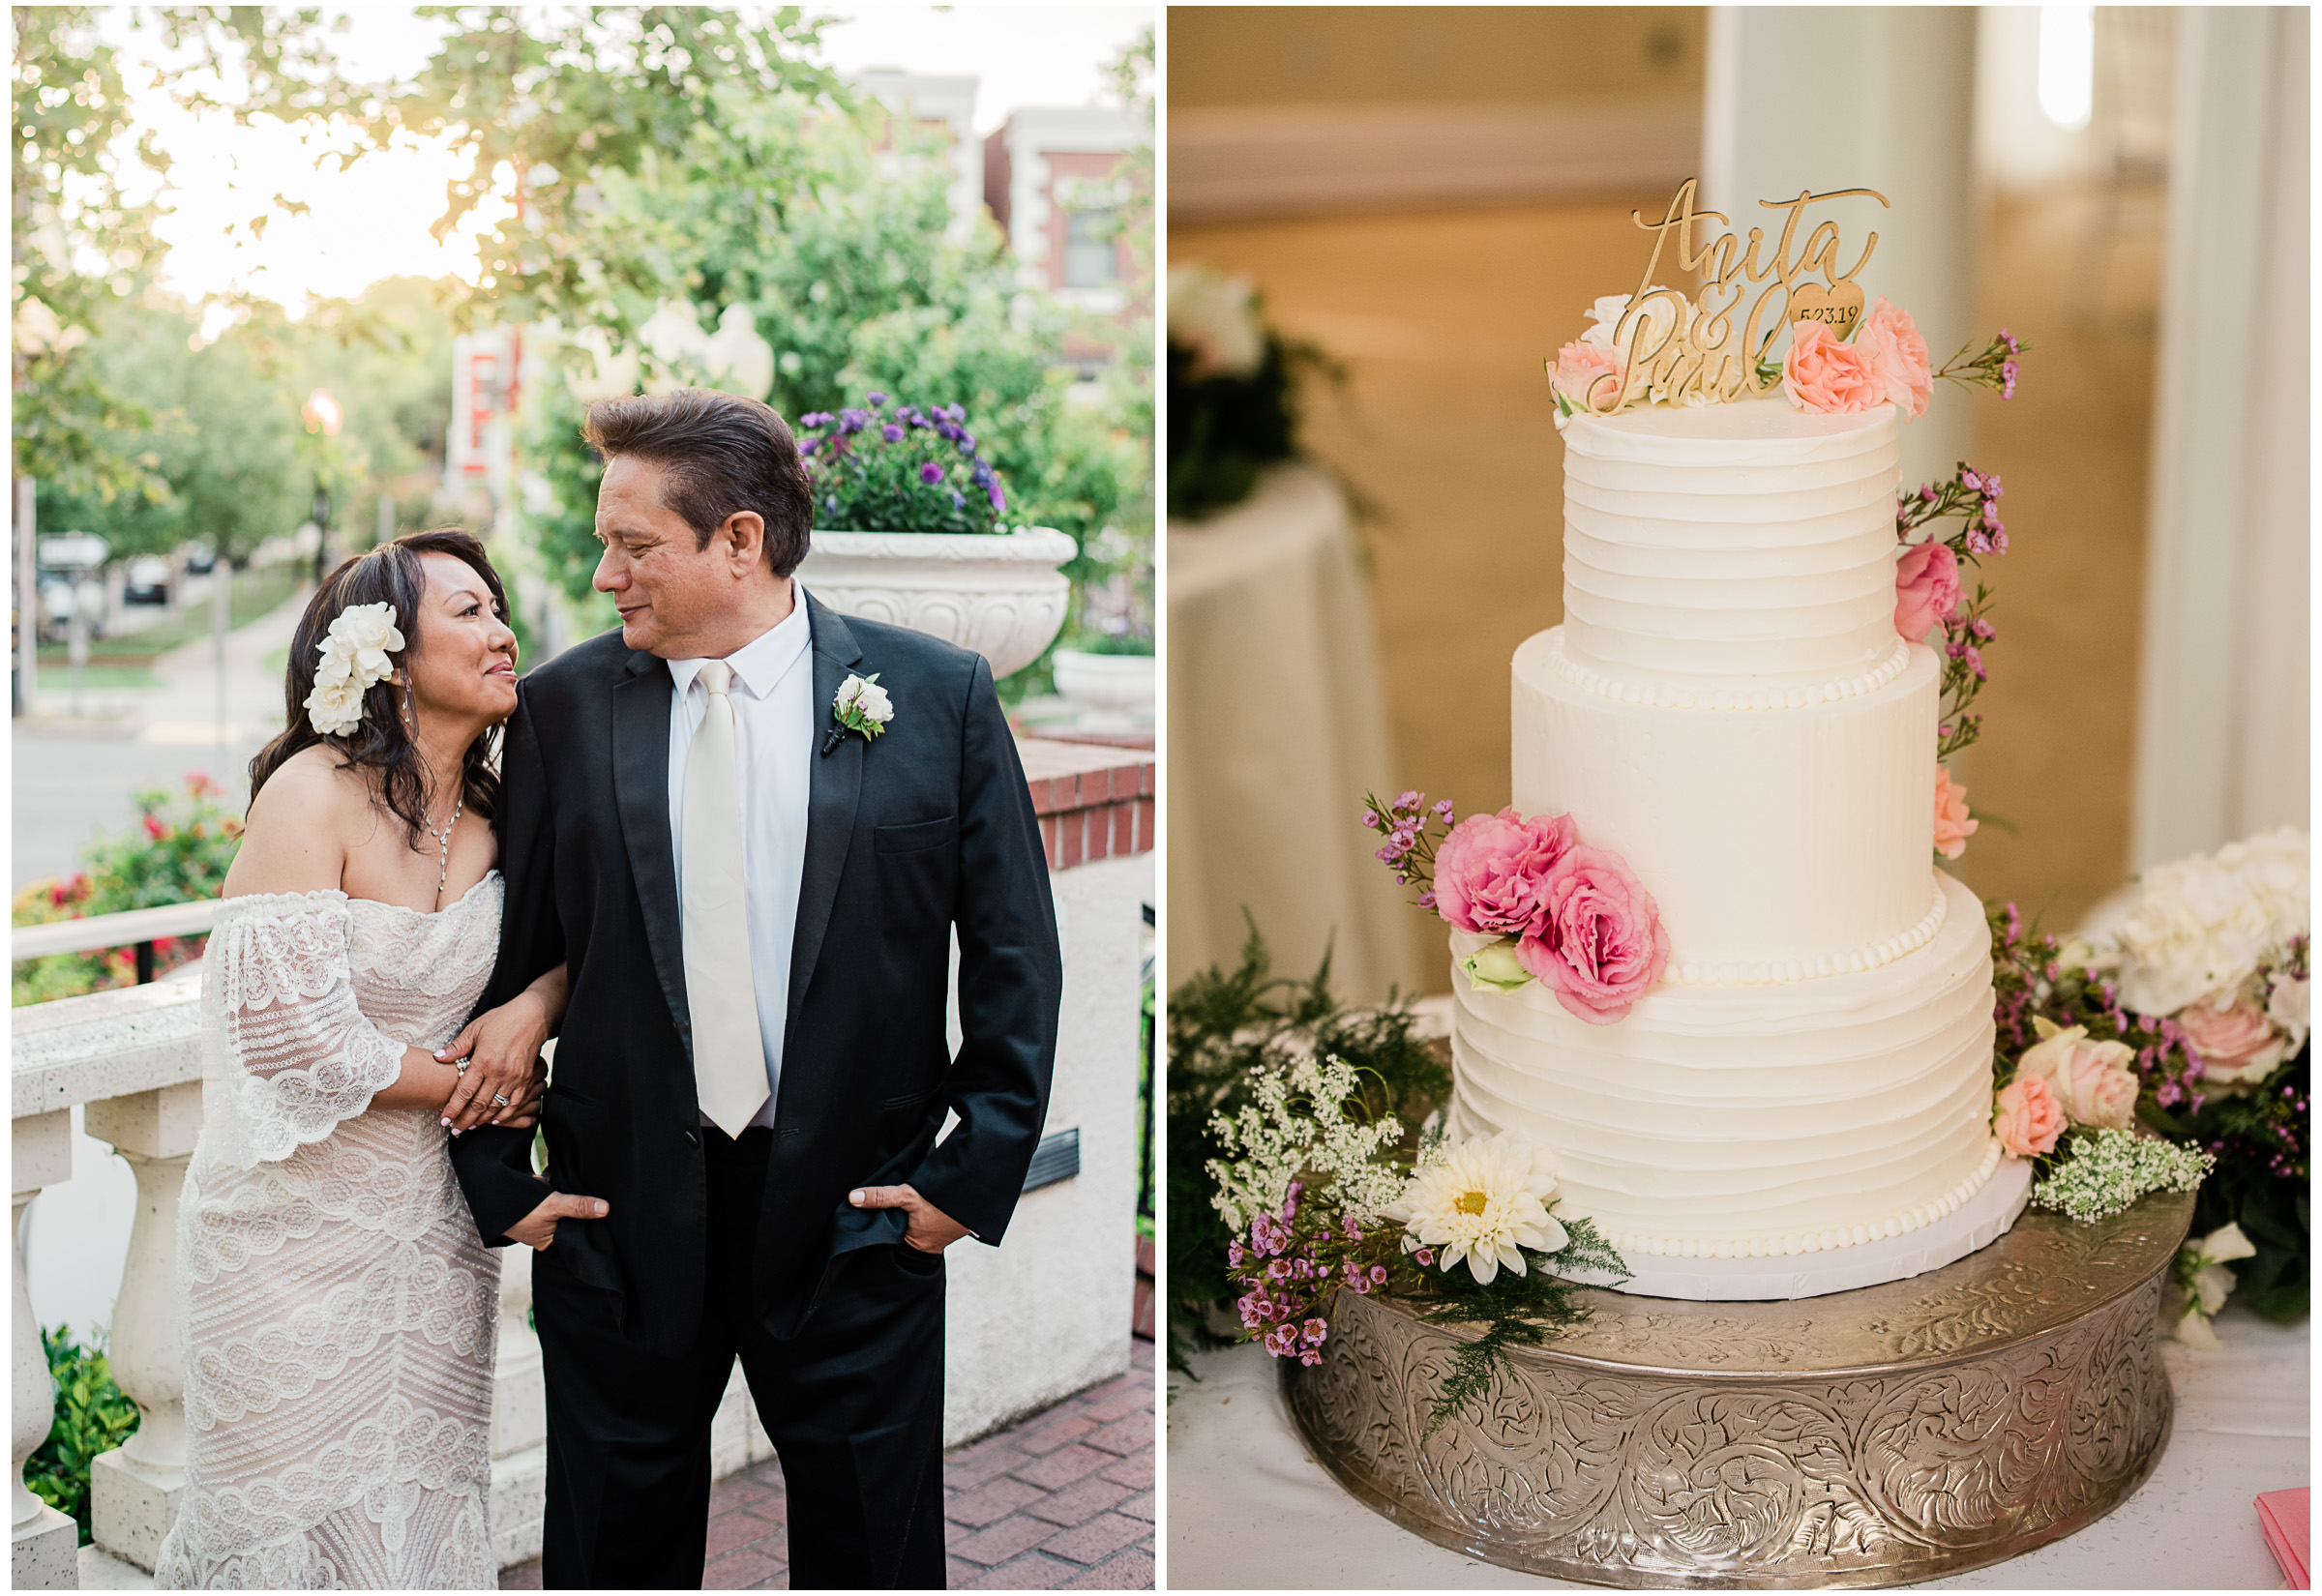 Sacramento Wedding - Sacramento Photographer - Vizcaya - Justin Wilcox Photography - 16.jpg